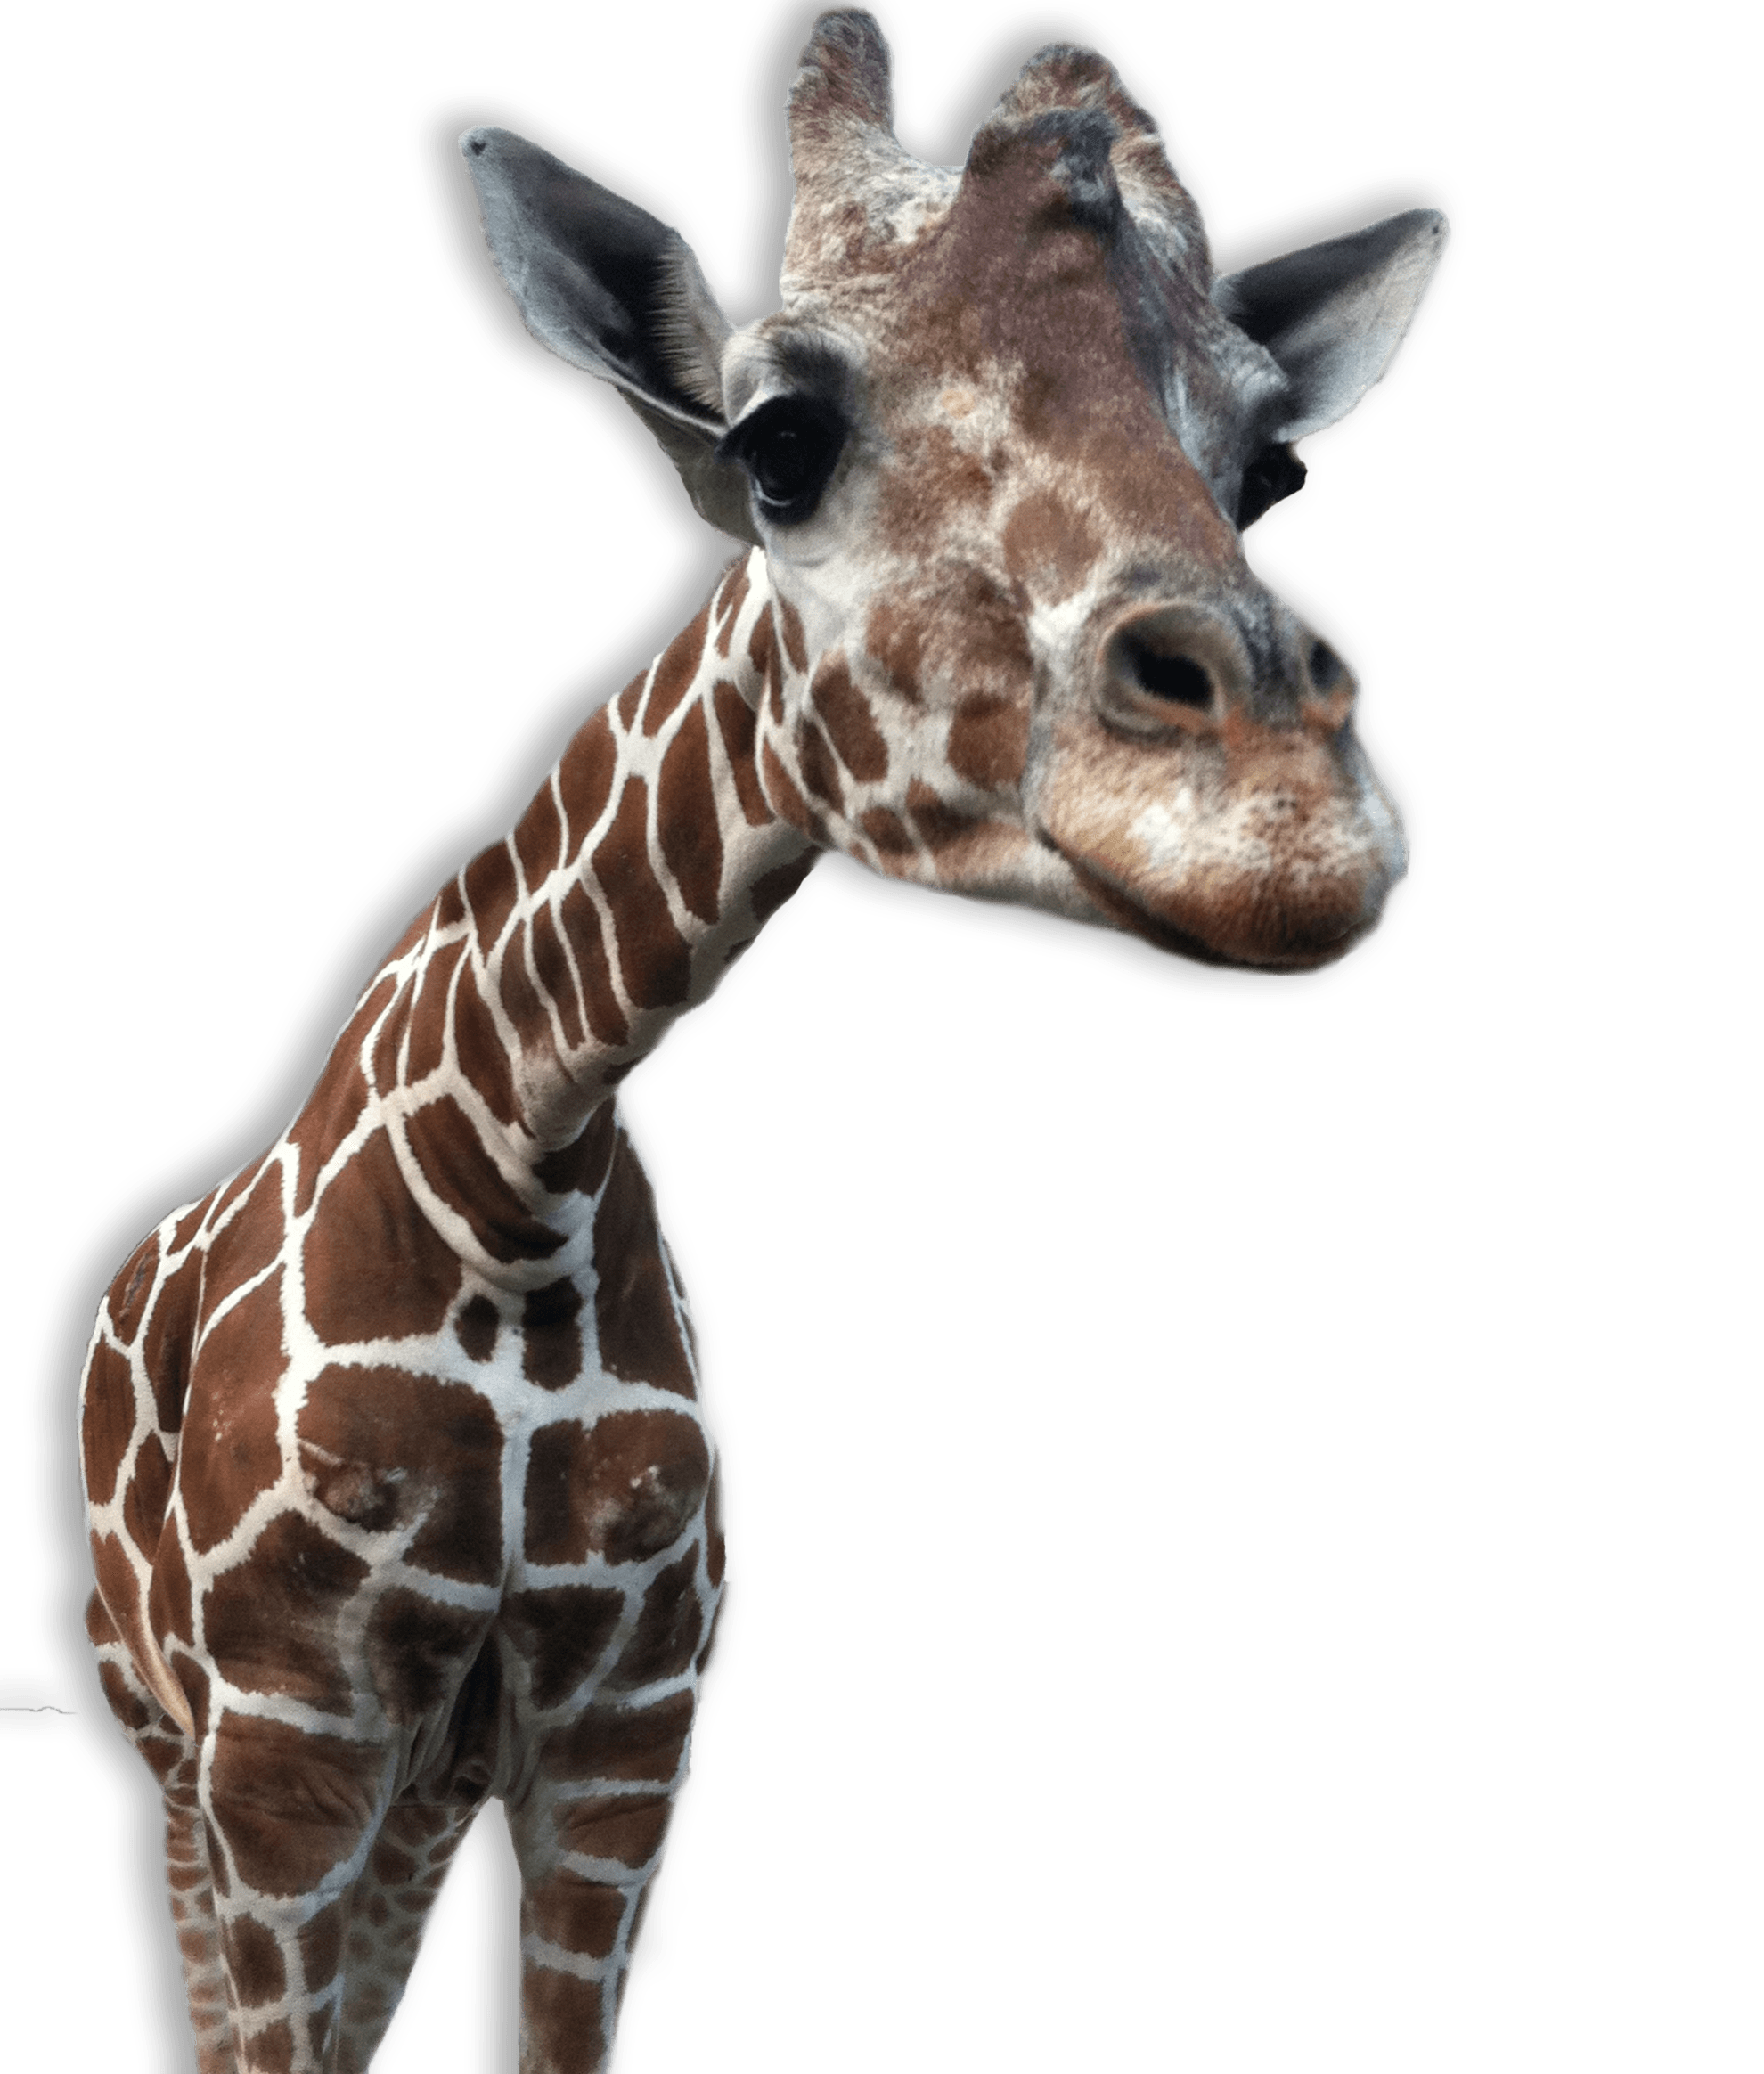 Animal transparent png. Giraffe images all